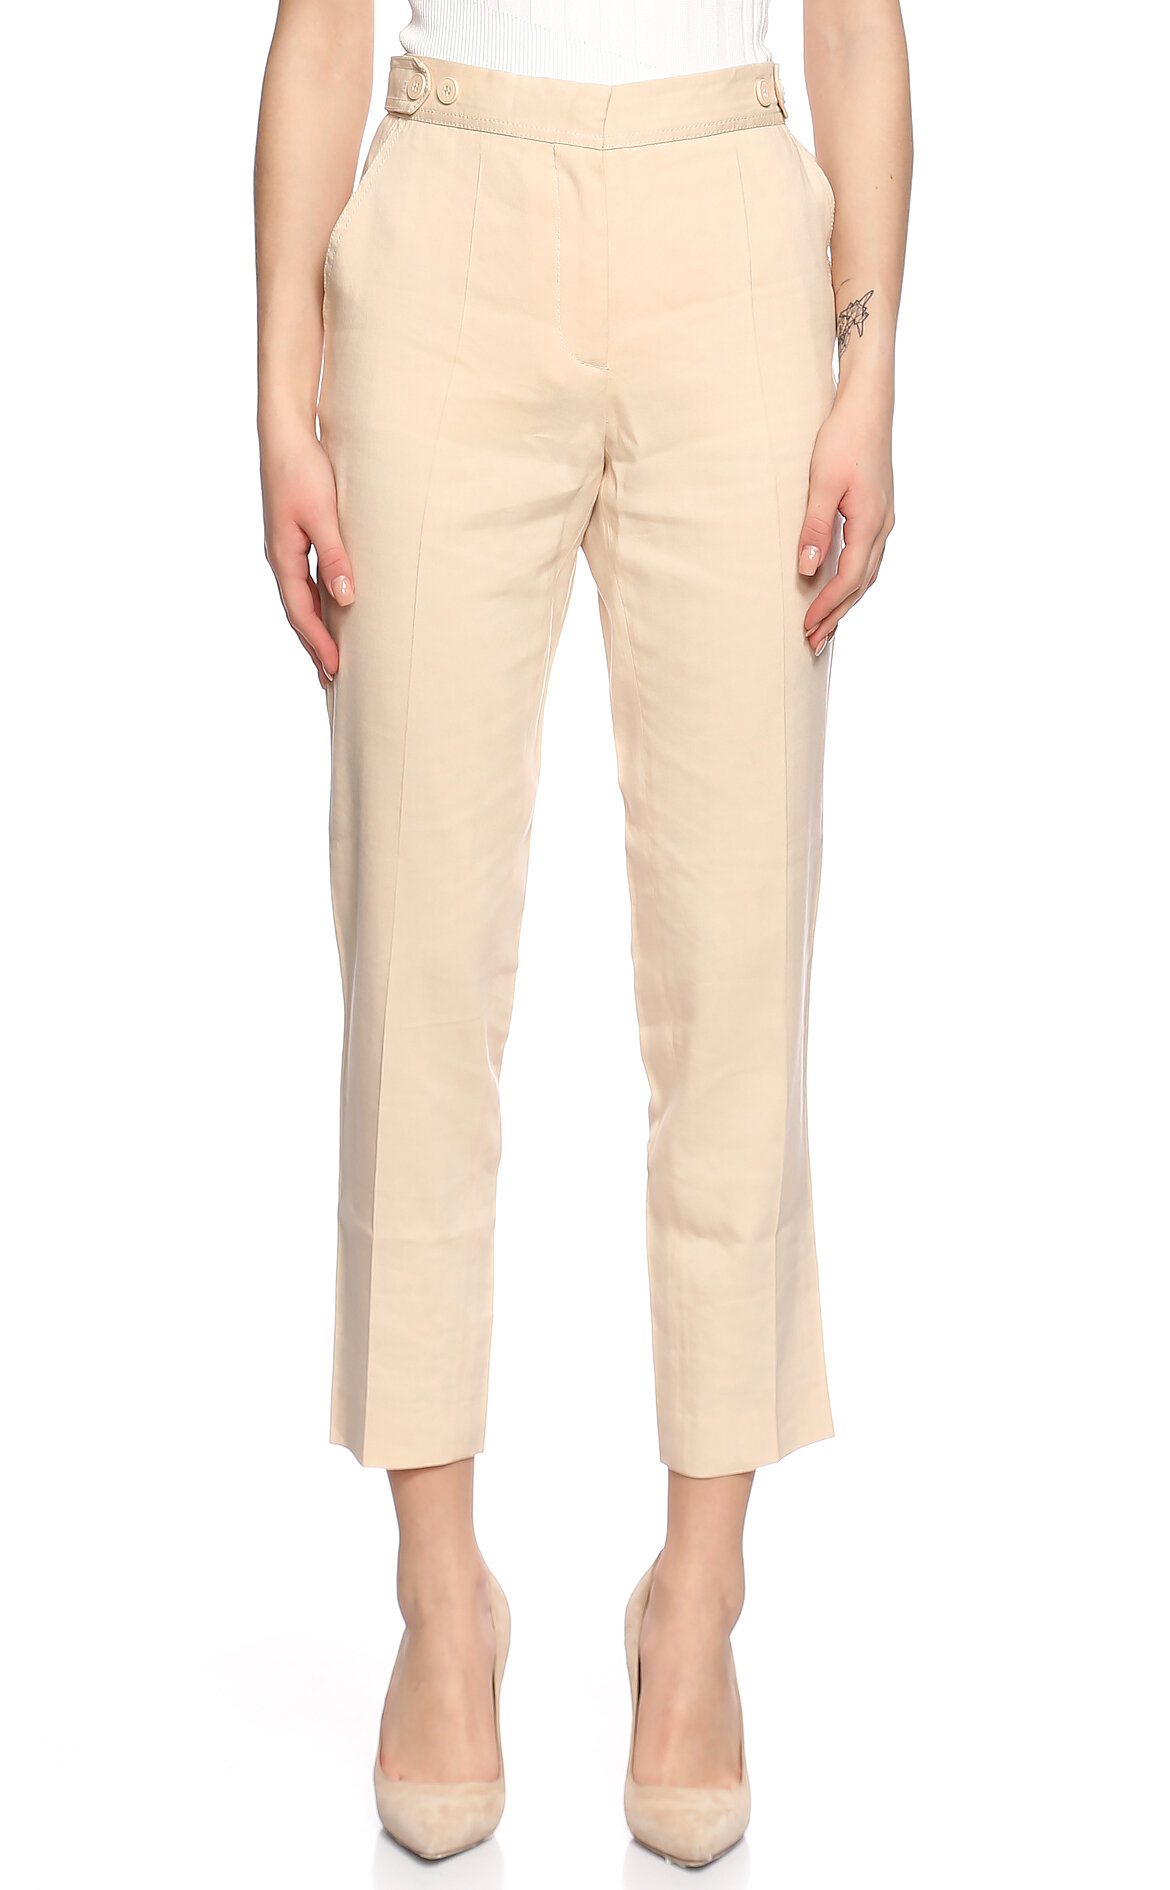 Stella McCartney  Pudra Rengi Pantolon